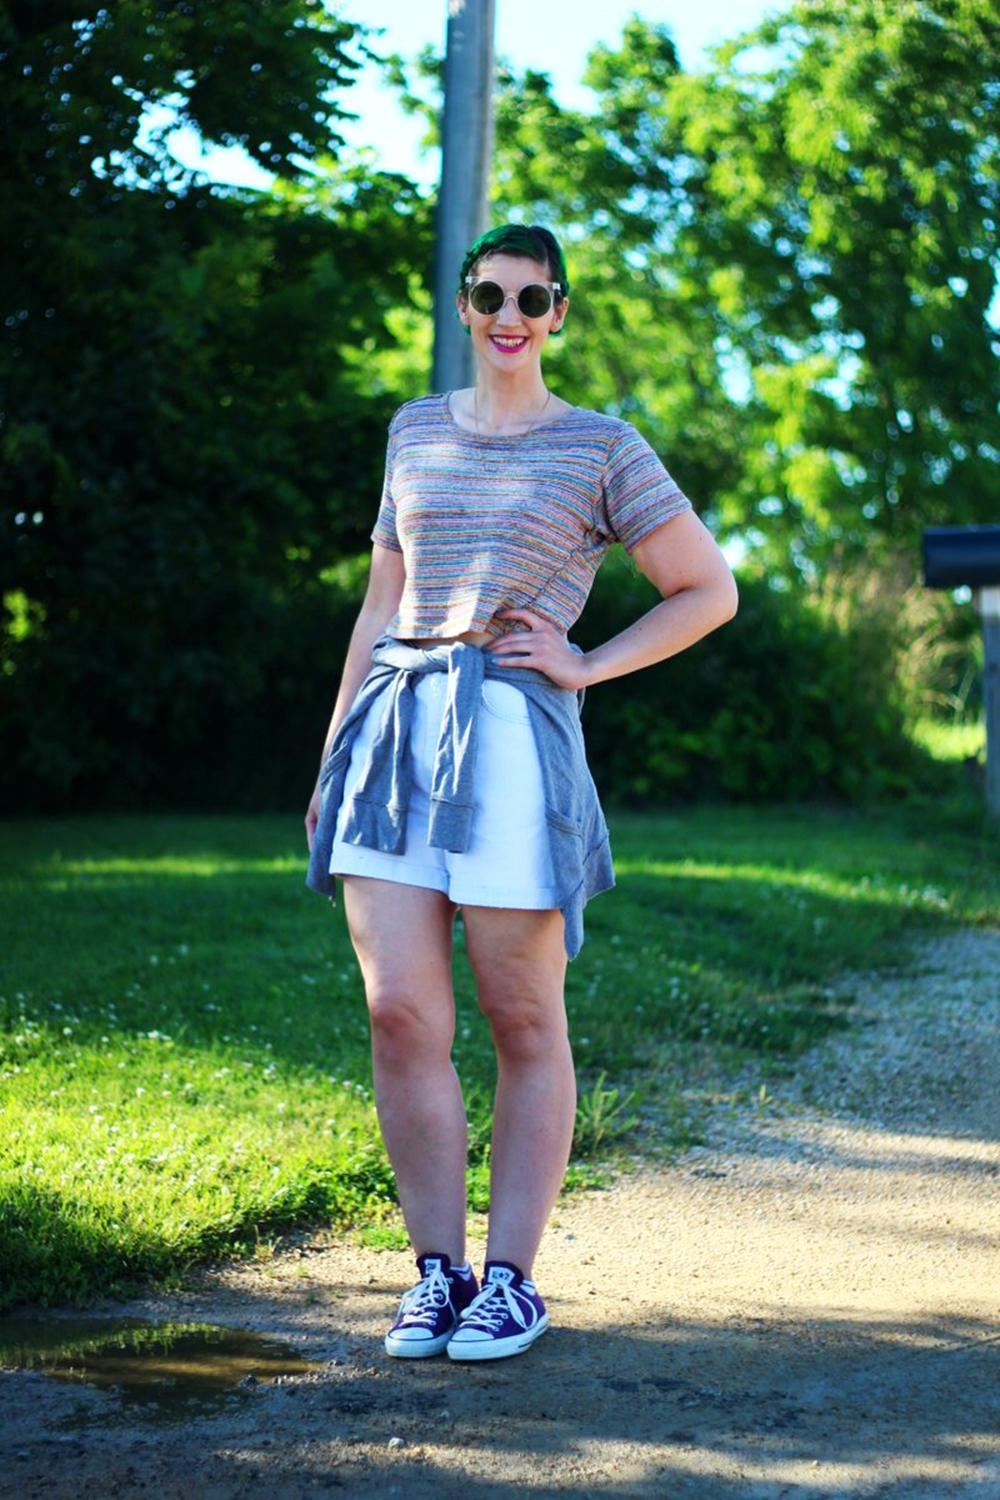 sunglasses-green-hair-striped-crop-top-denim-summer-outfit-06